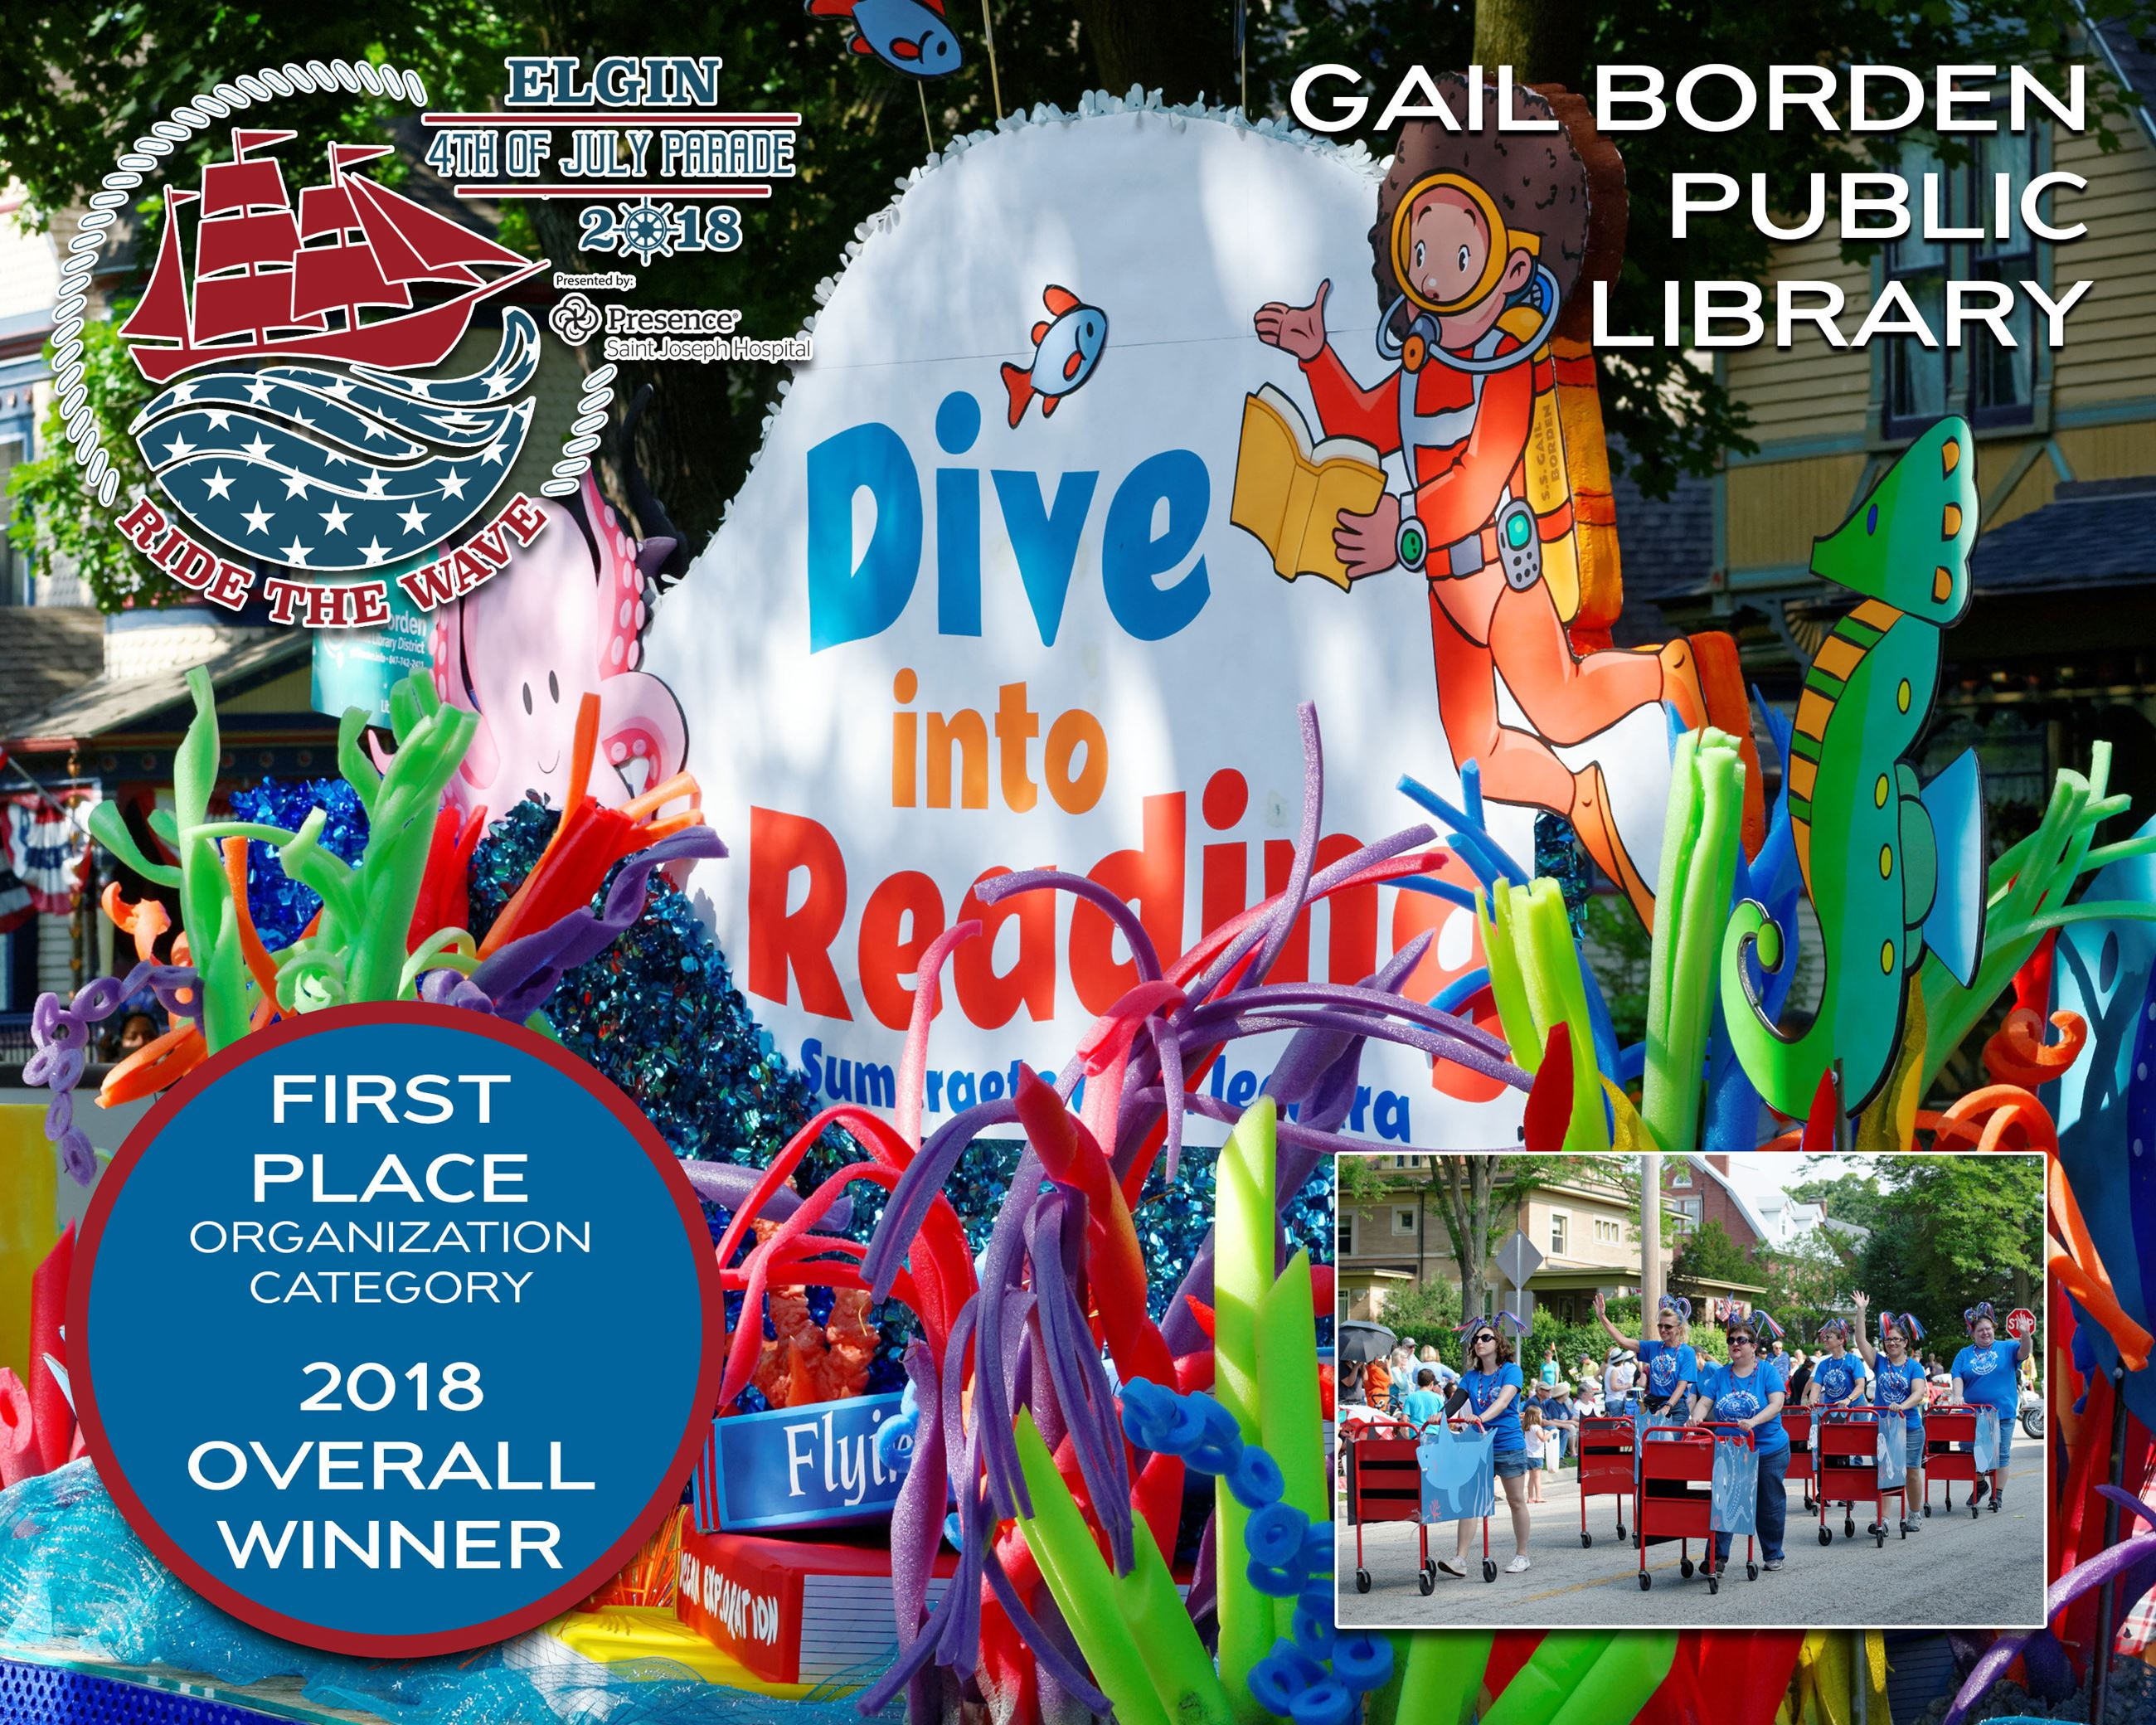 Gail Borden Public Library first place overall parade winner